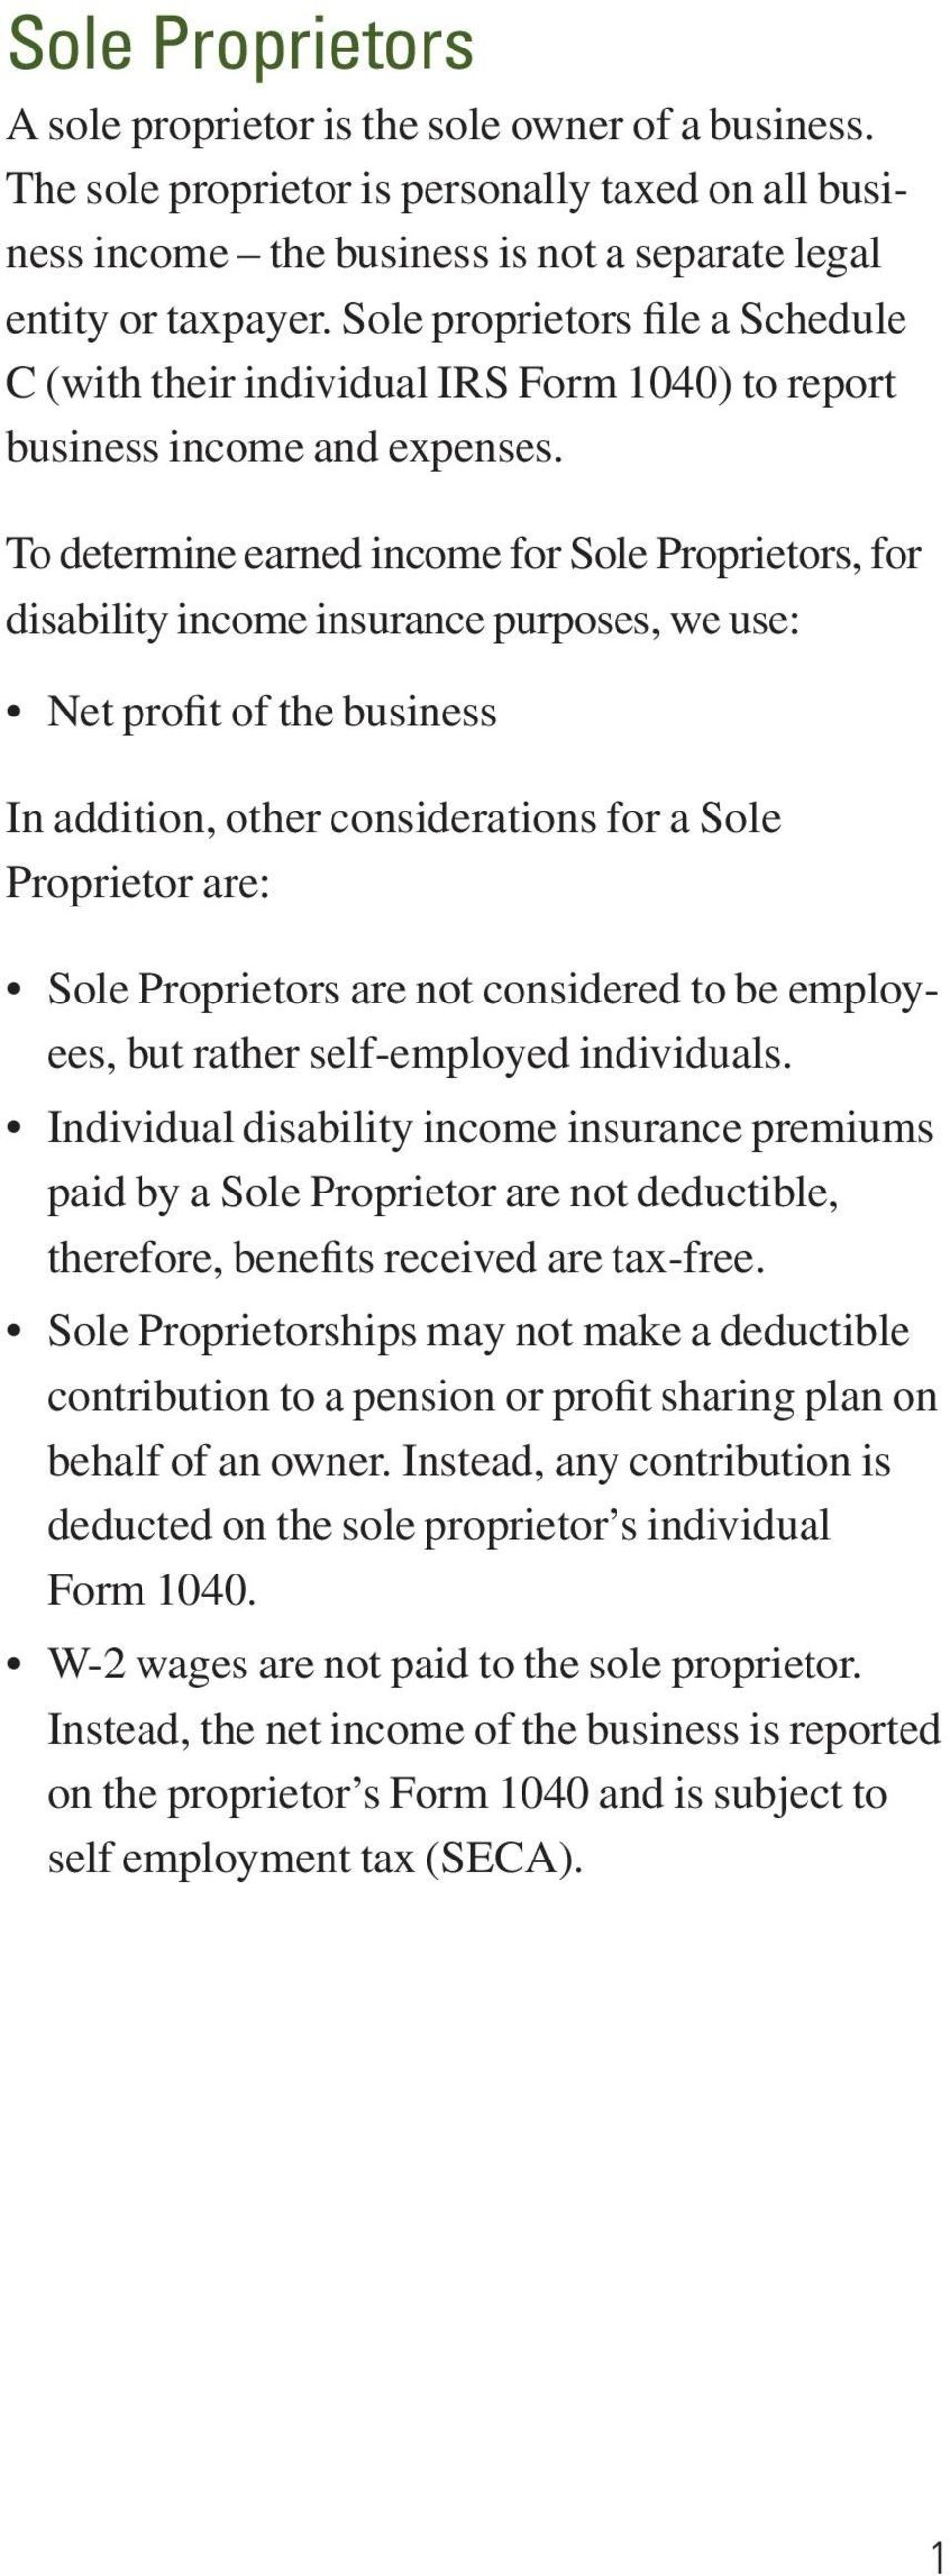 To determine earned income for Sole Proprietors, for disability income insurance purposes, we use: Net profit of the business In addition, other considerations for a Sole Proprietor are: Sole